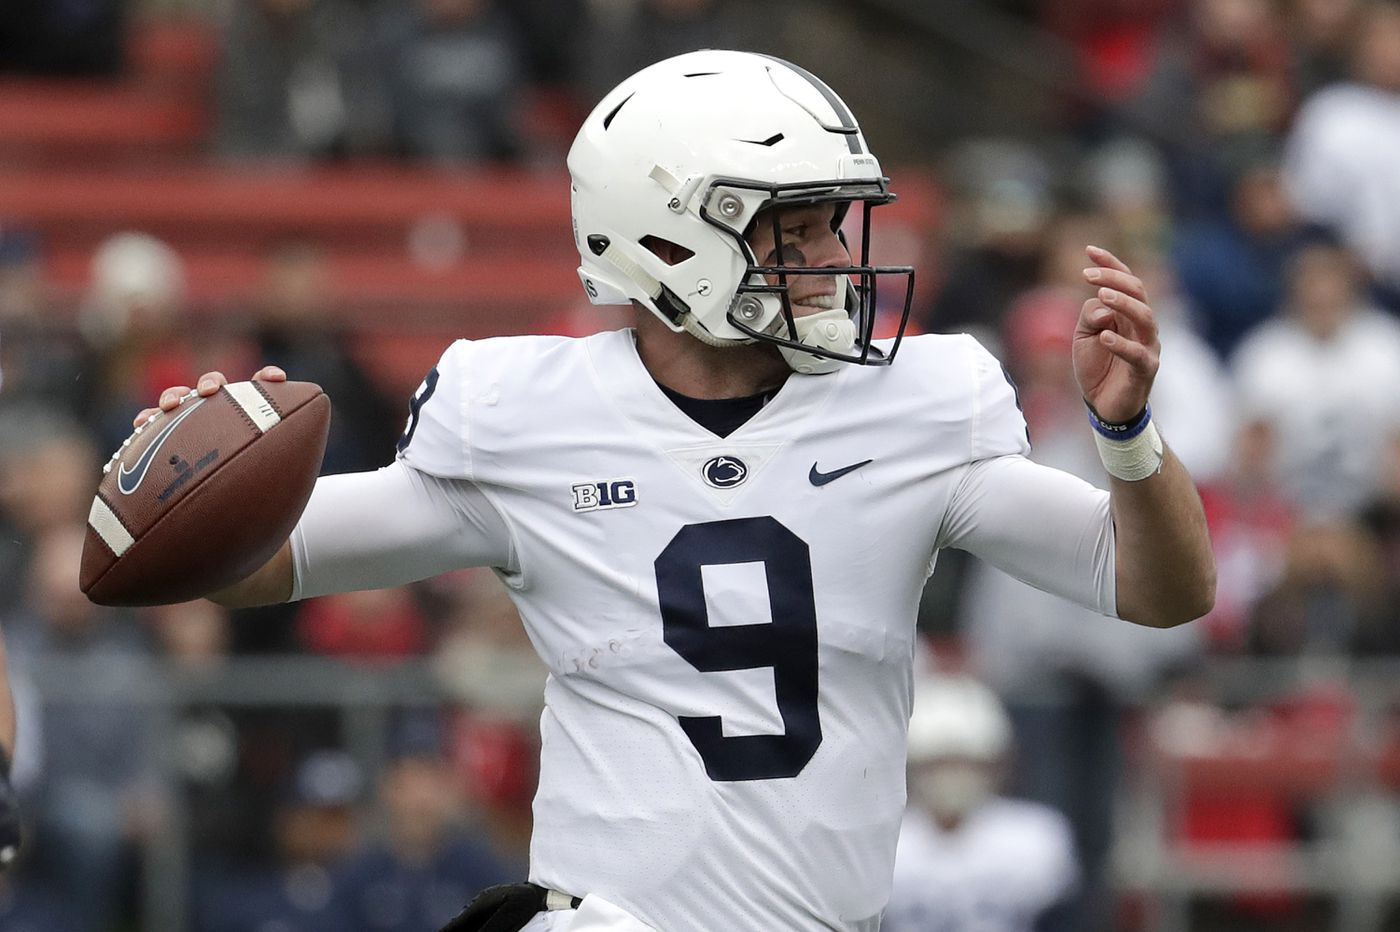 Penn State moves to No. 12 in College Football Playoff rankings